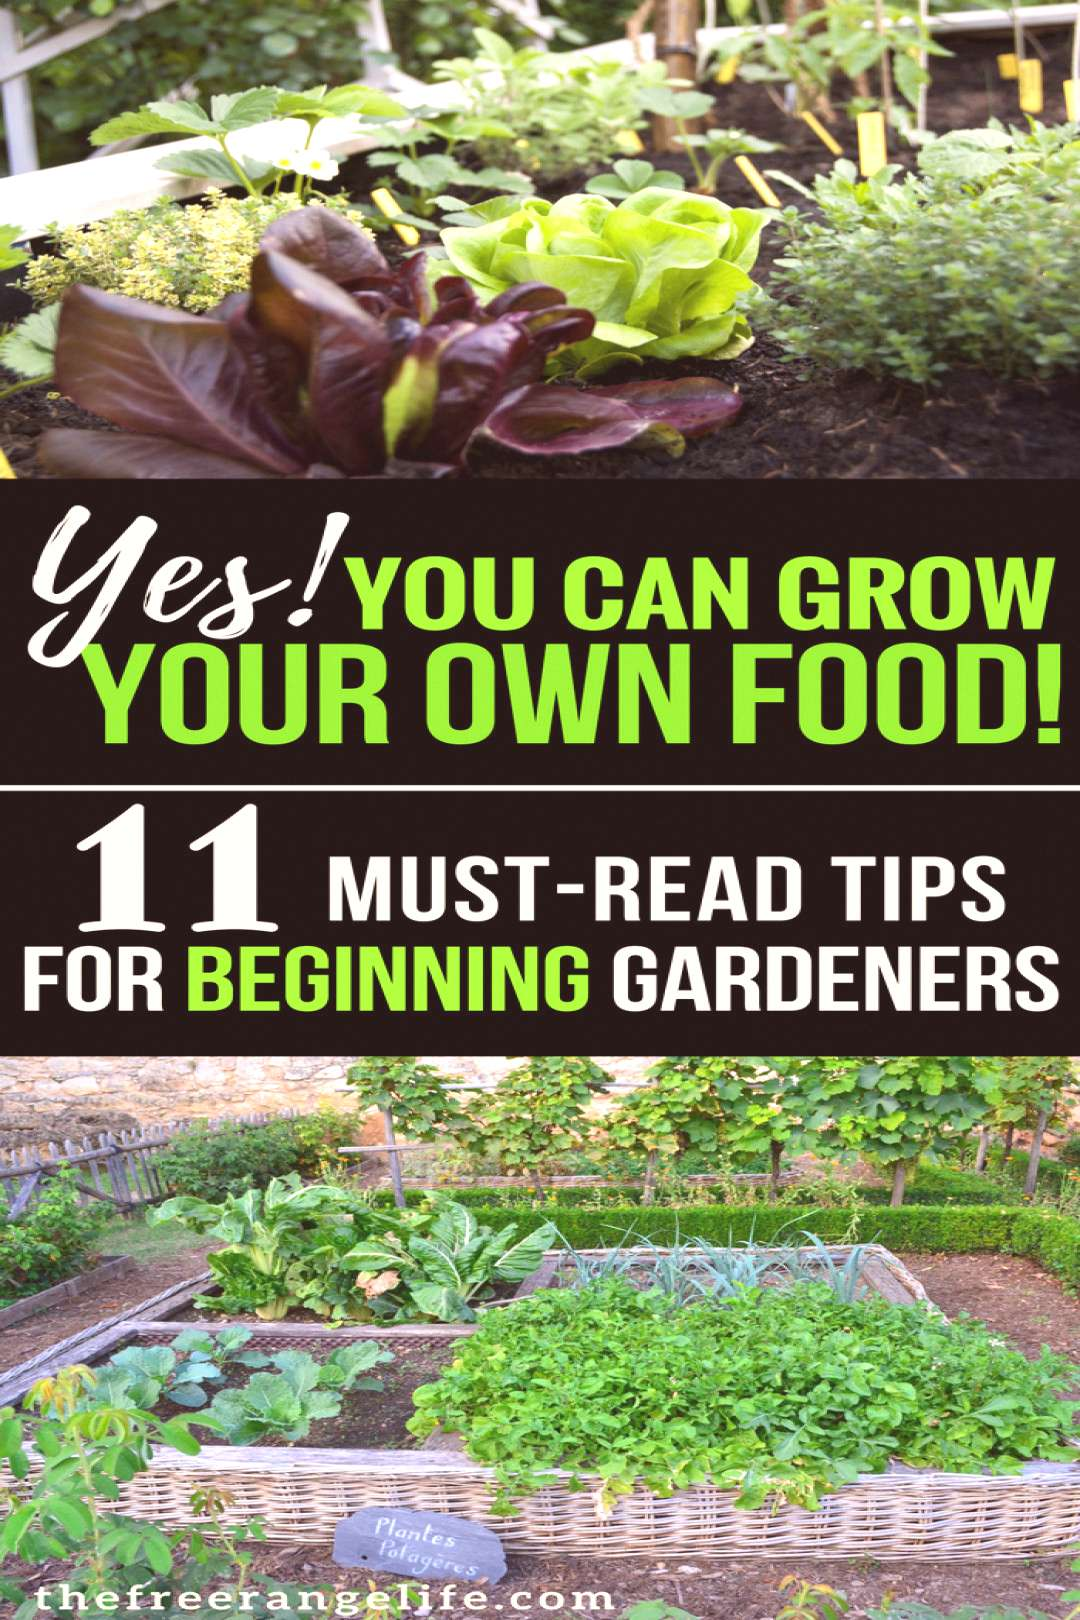 Looking For More Information On Organic Gardening? Consider These Ideas! - Useful Garden Ideas and